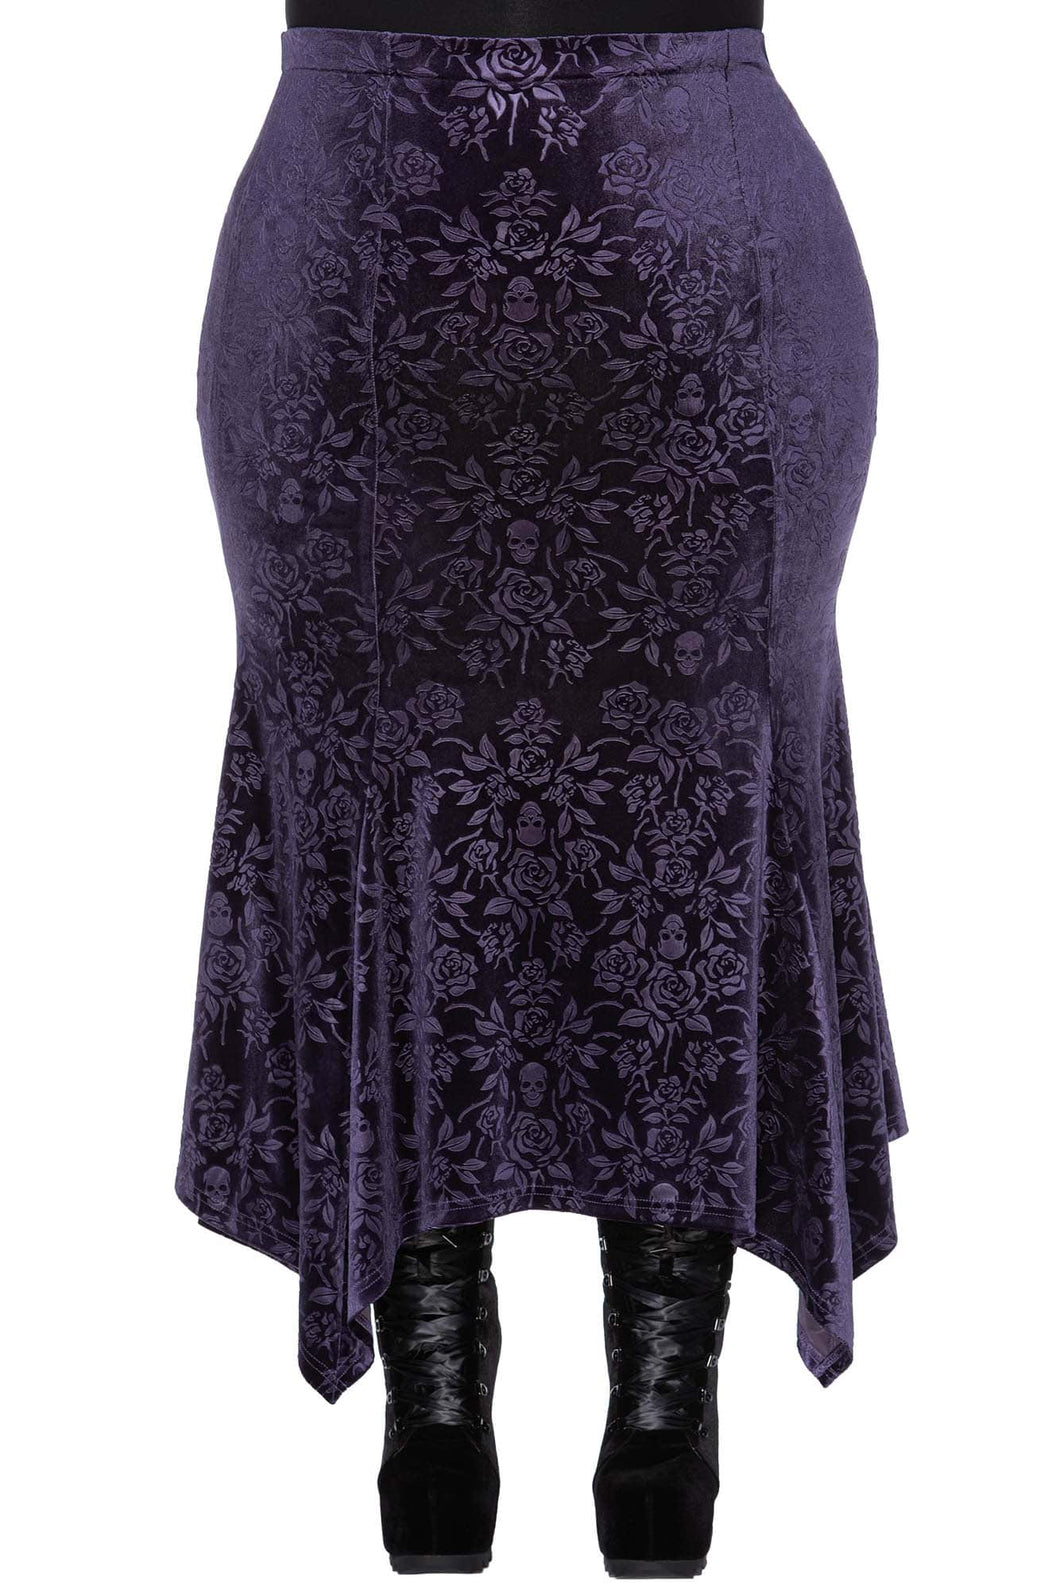 Killstar Roses Are Dead Maxi Skirt Plum Plus Size - Kate's Clothing